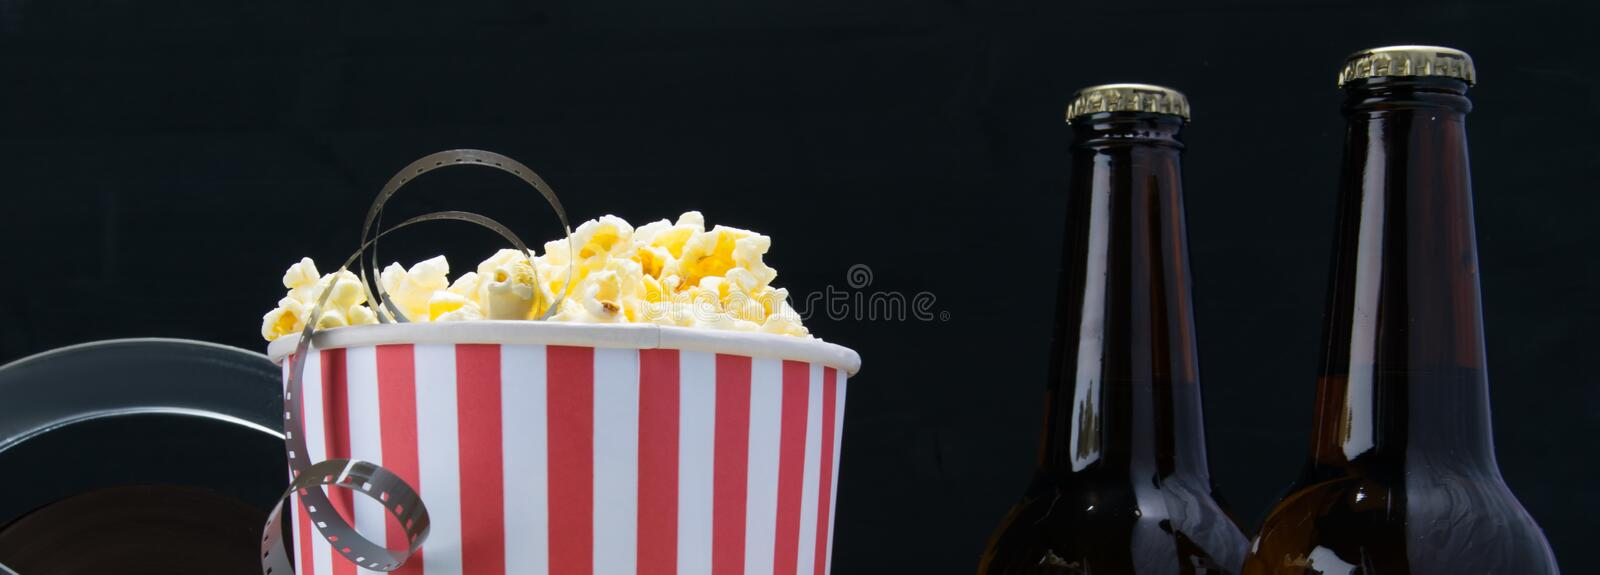 Film in popcorn, on a black background, with two bottles of beer royalty free stock photo